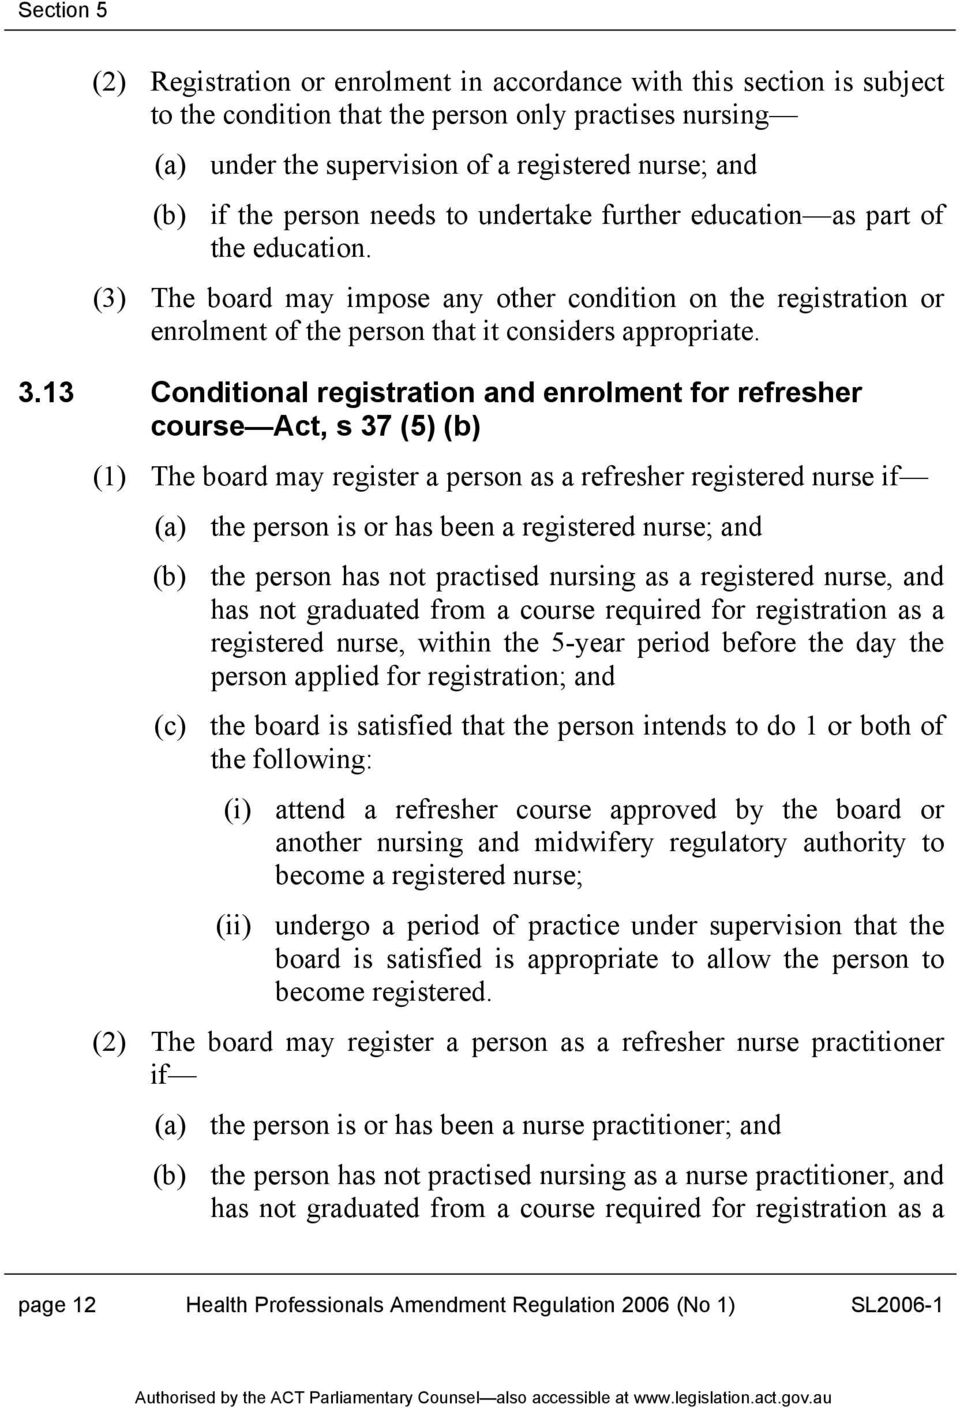 13 Conditional registration and enrolment for refresher course Act, s 37 (5) (b) (1) The board may register a person as a refresher registered nurse if (a) the person is or has been a registered